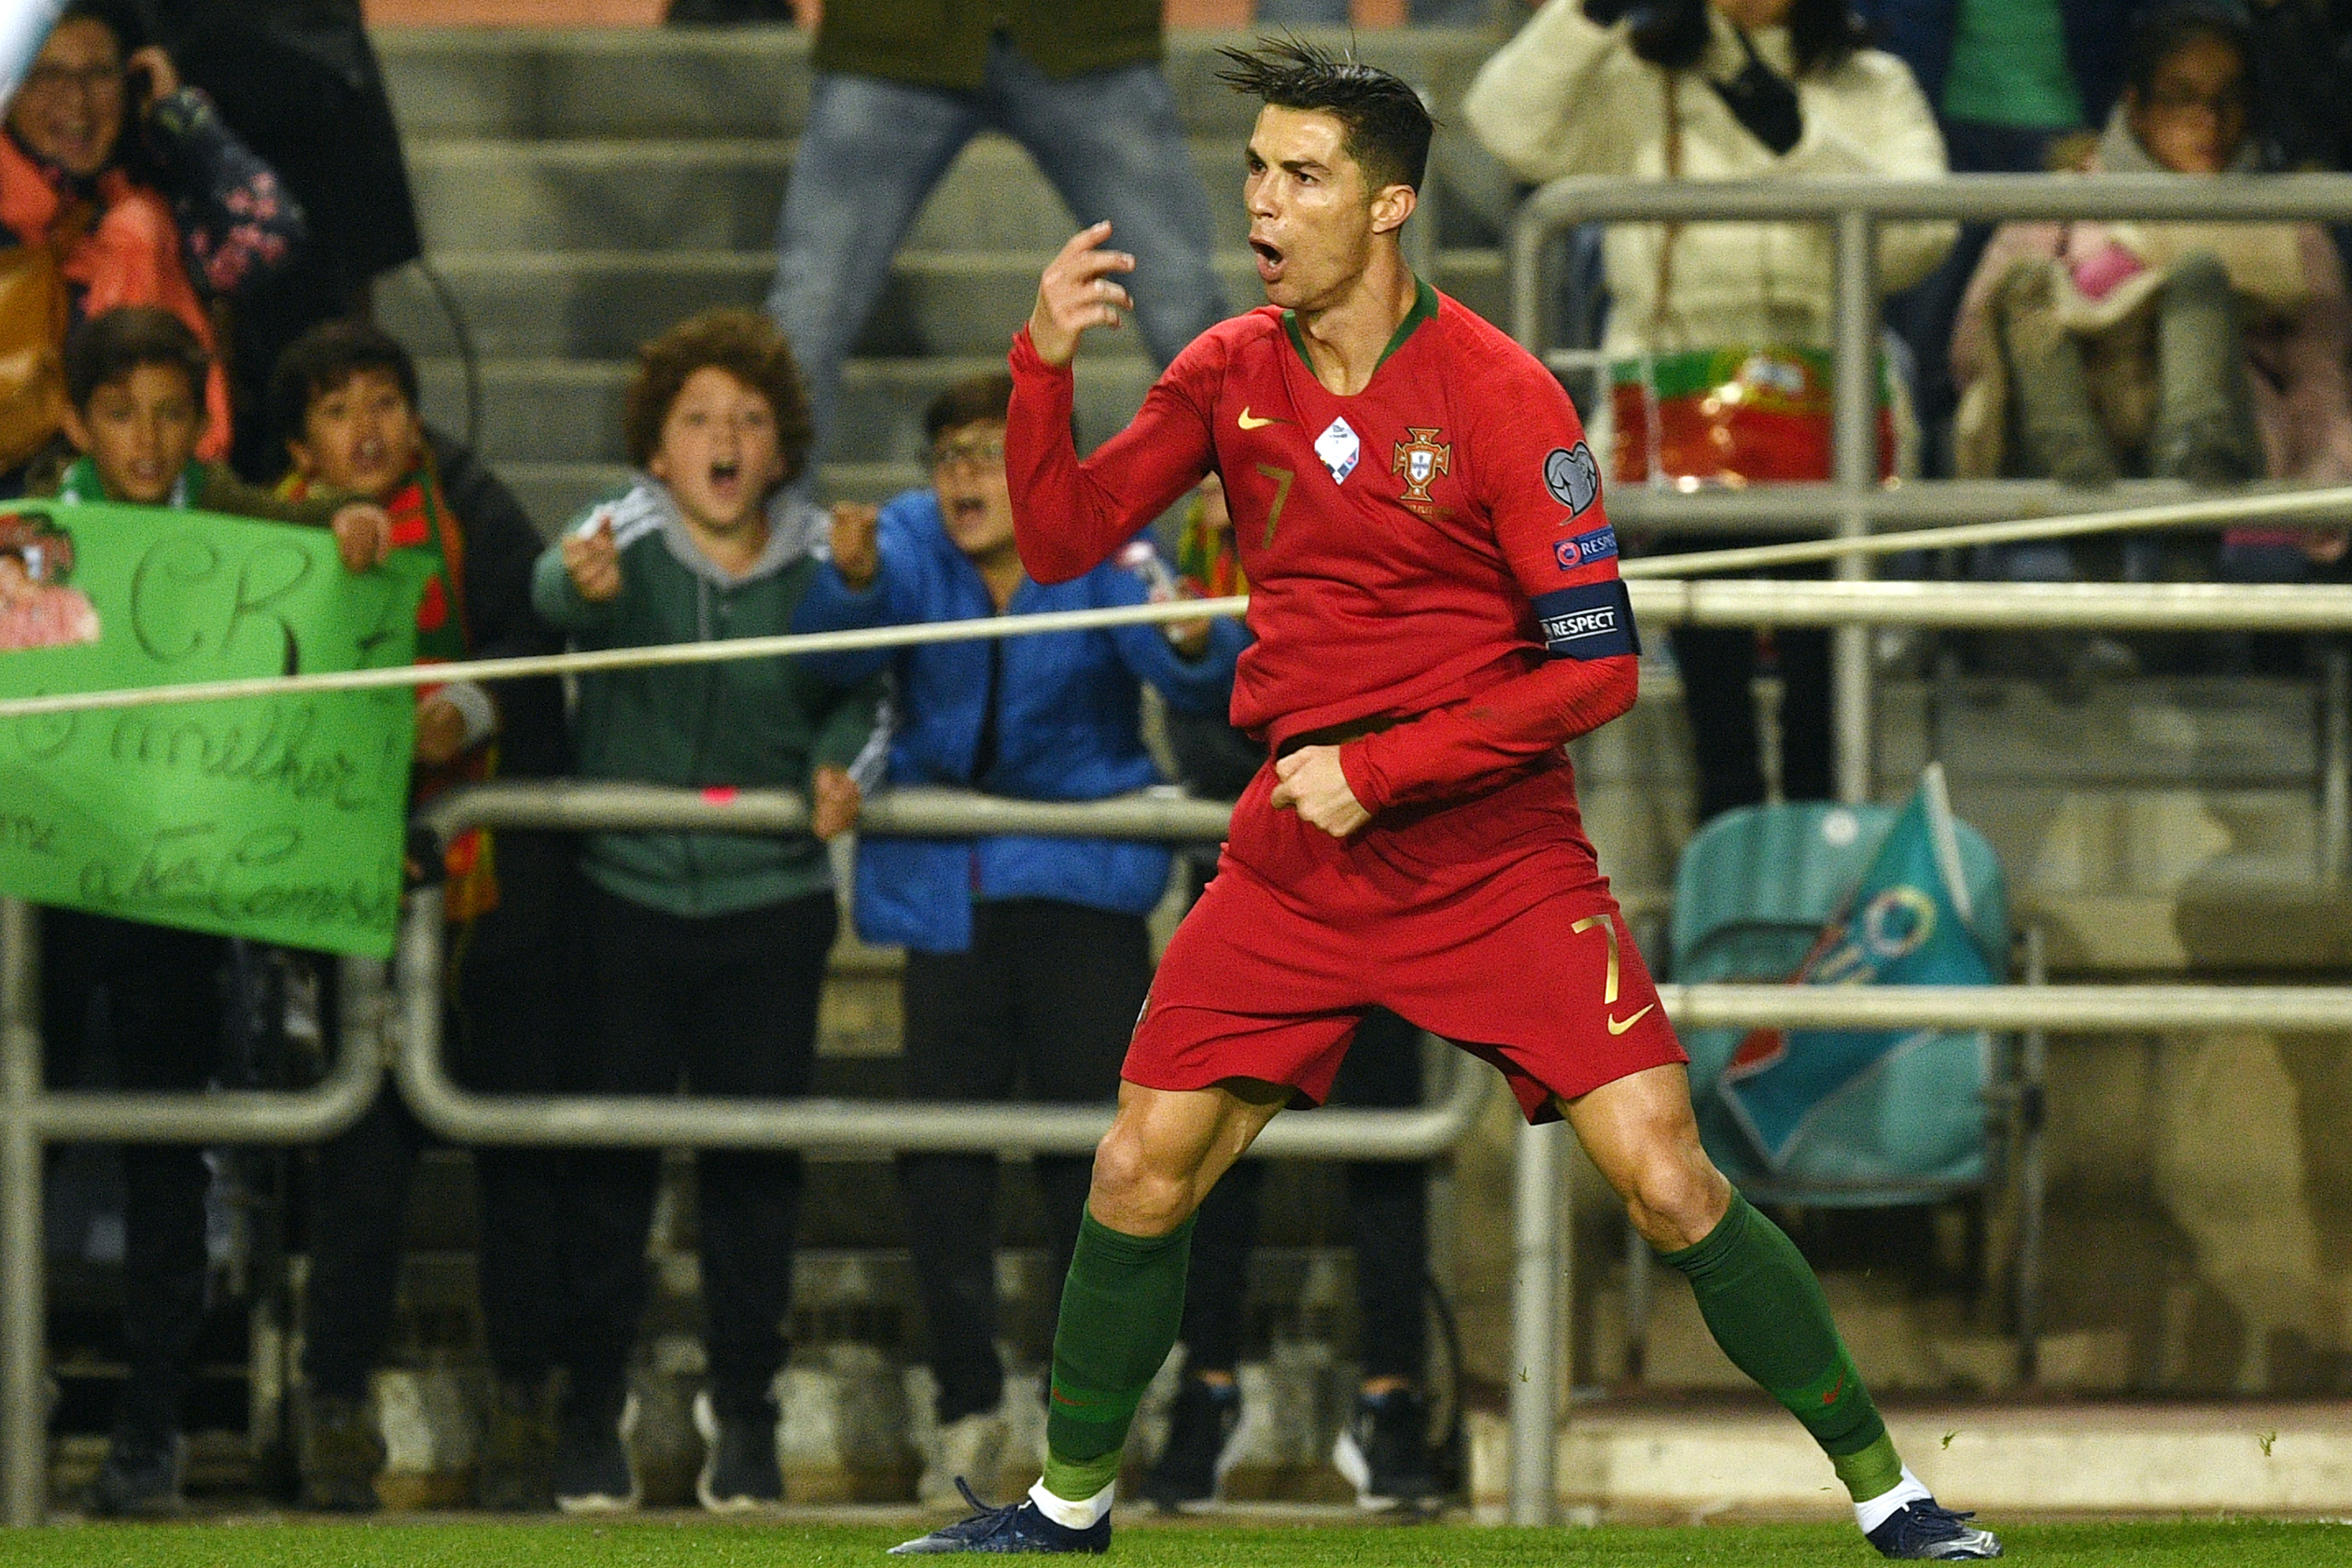 Cristiano Ronaldo Portugal Goals Total Reaches 98 After Hat Trick